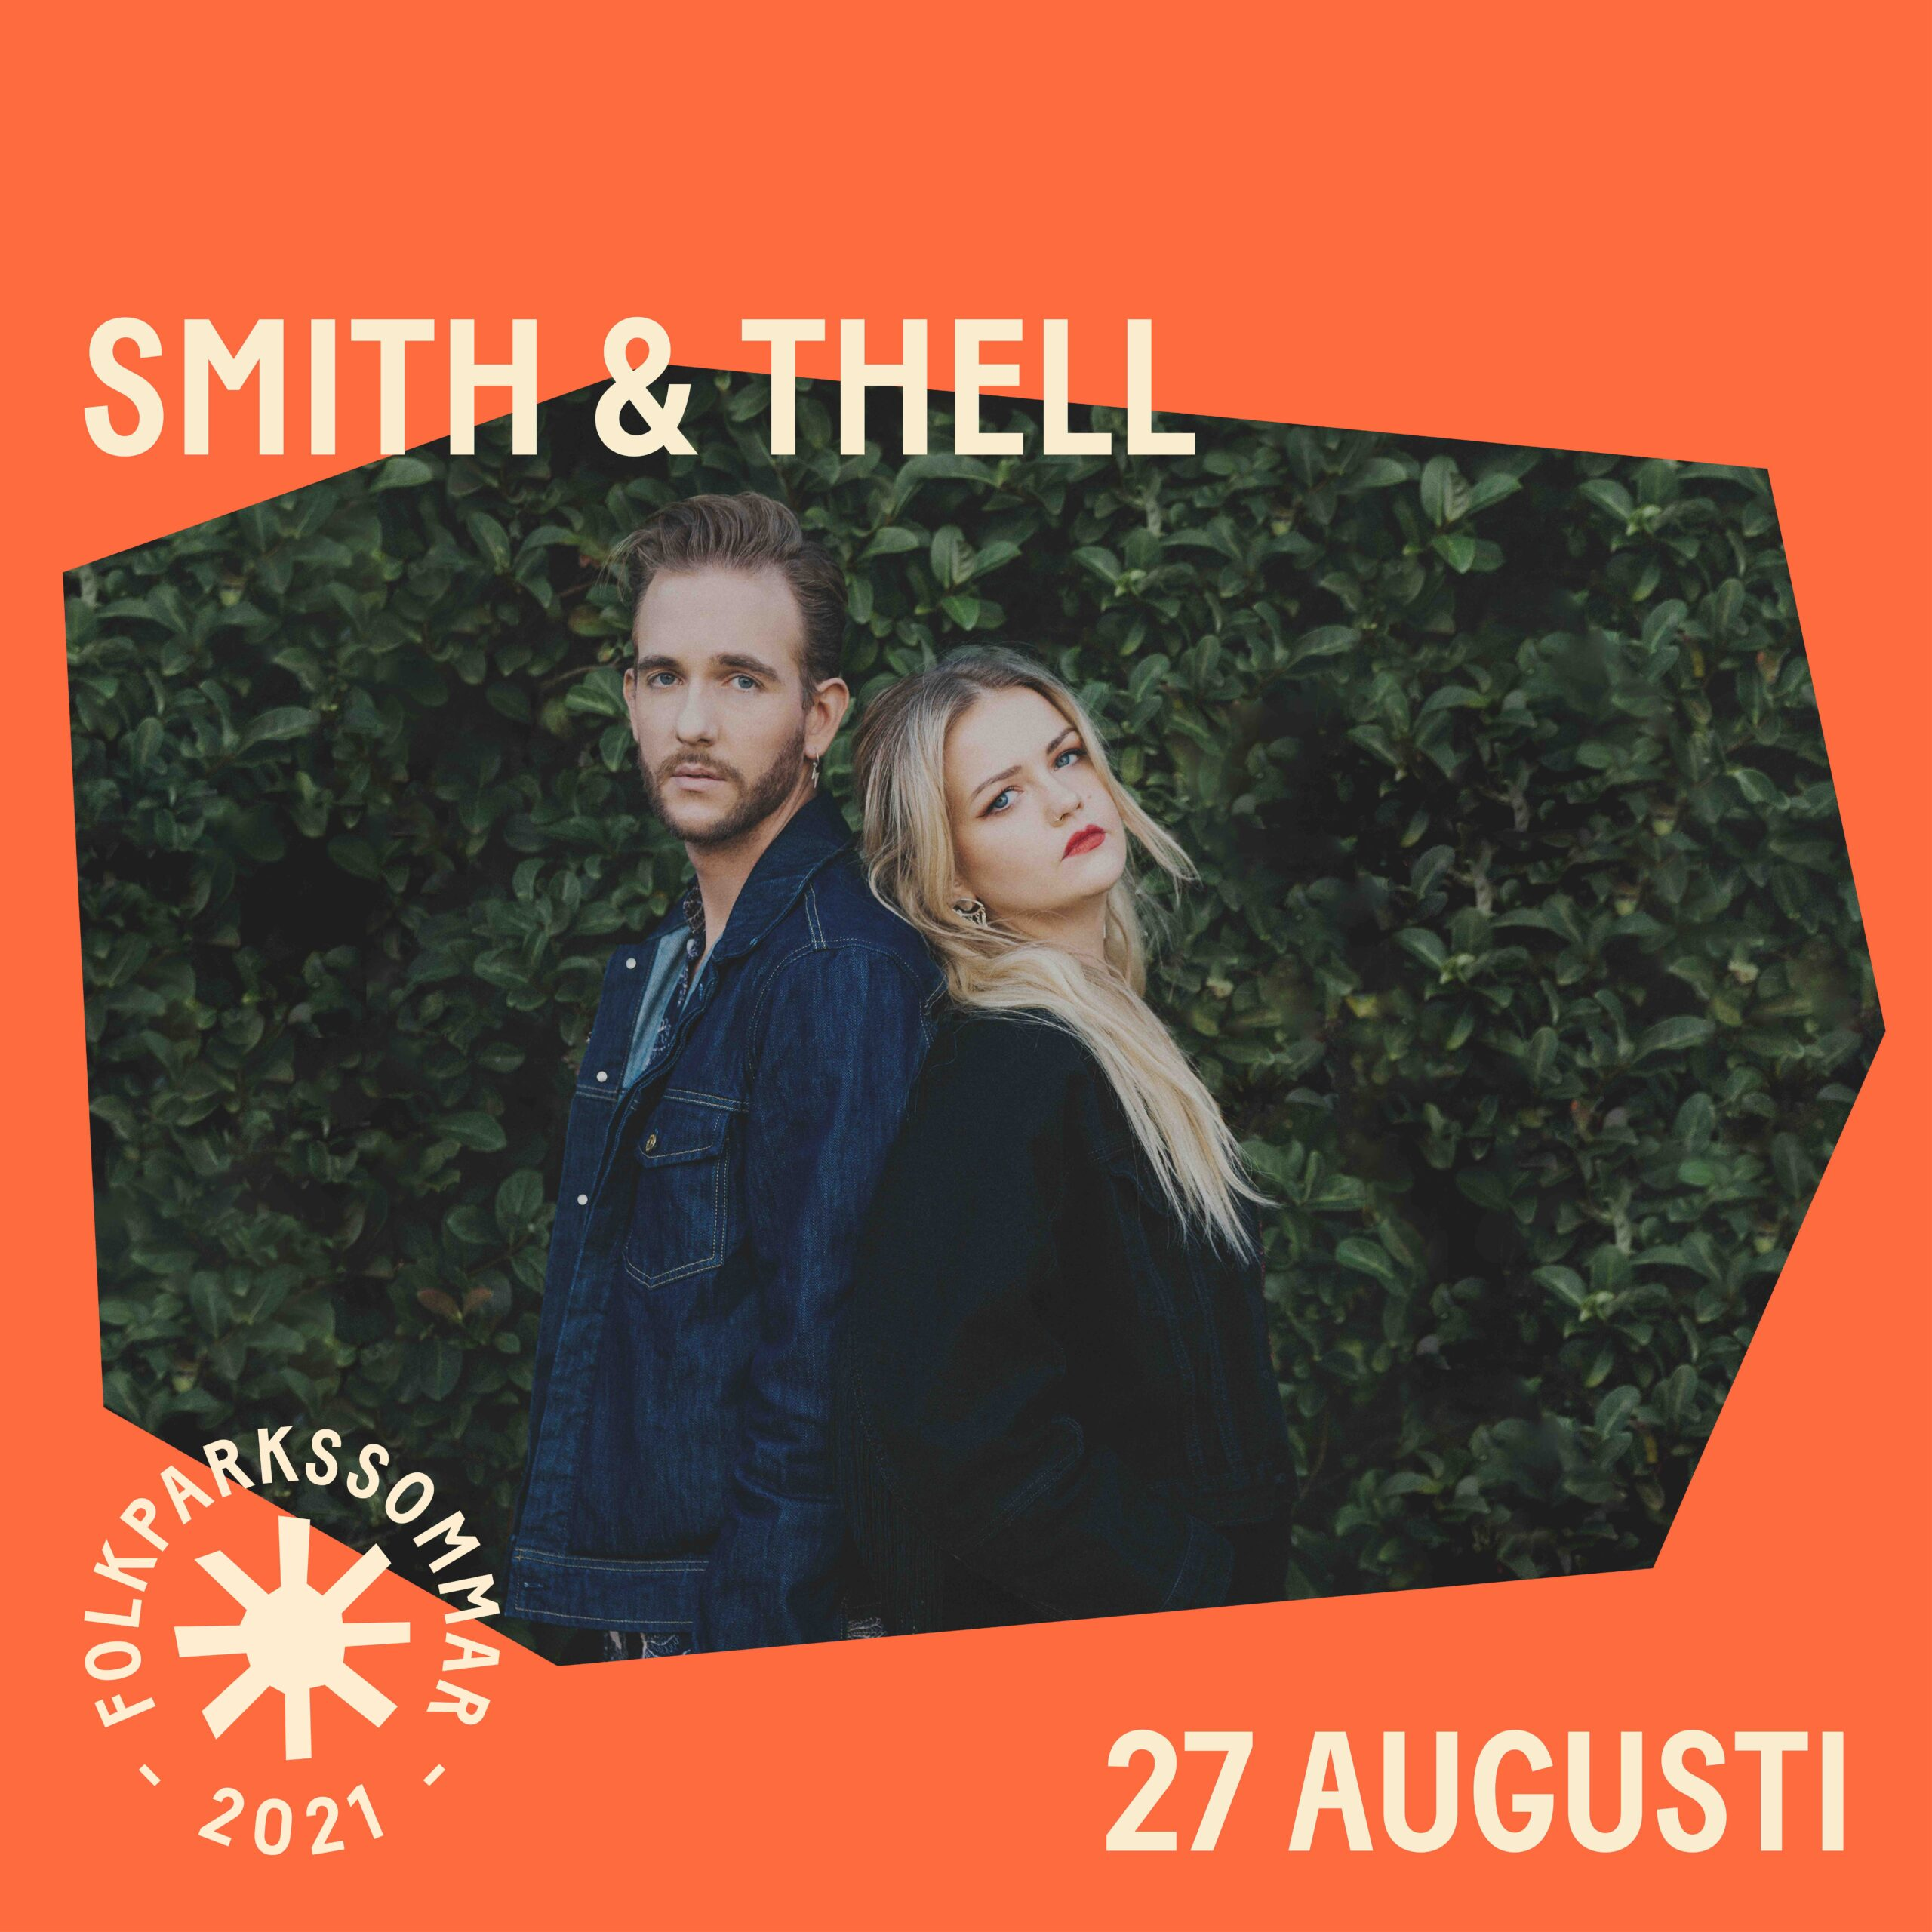 FPS21 Post - Smith & Thell